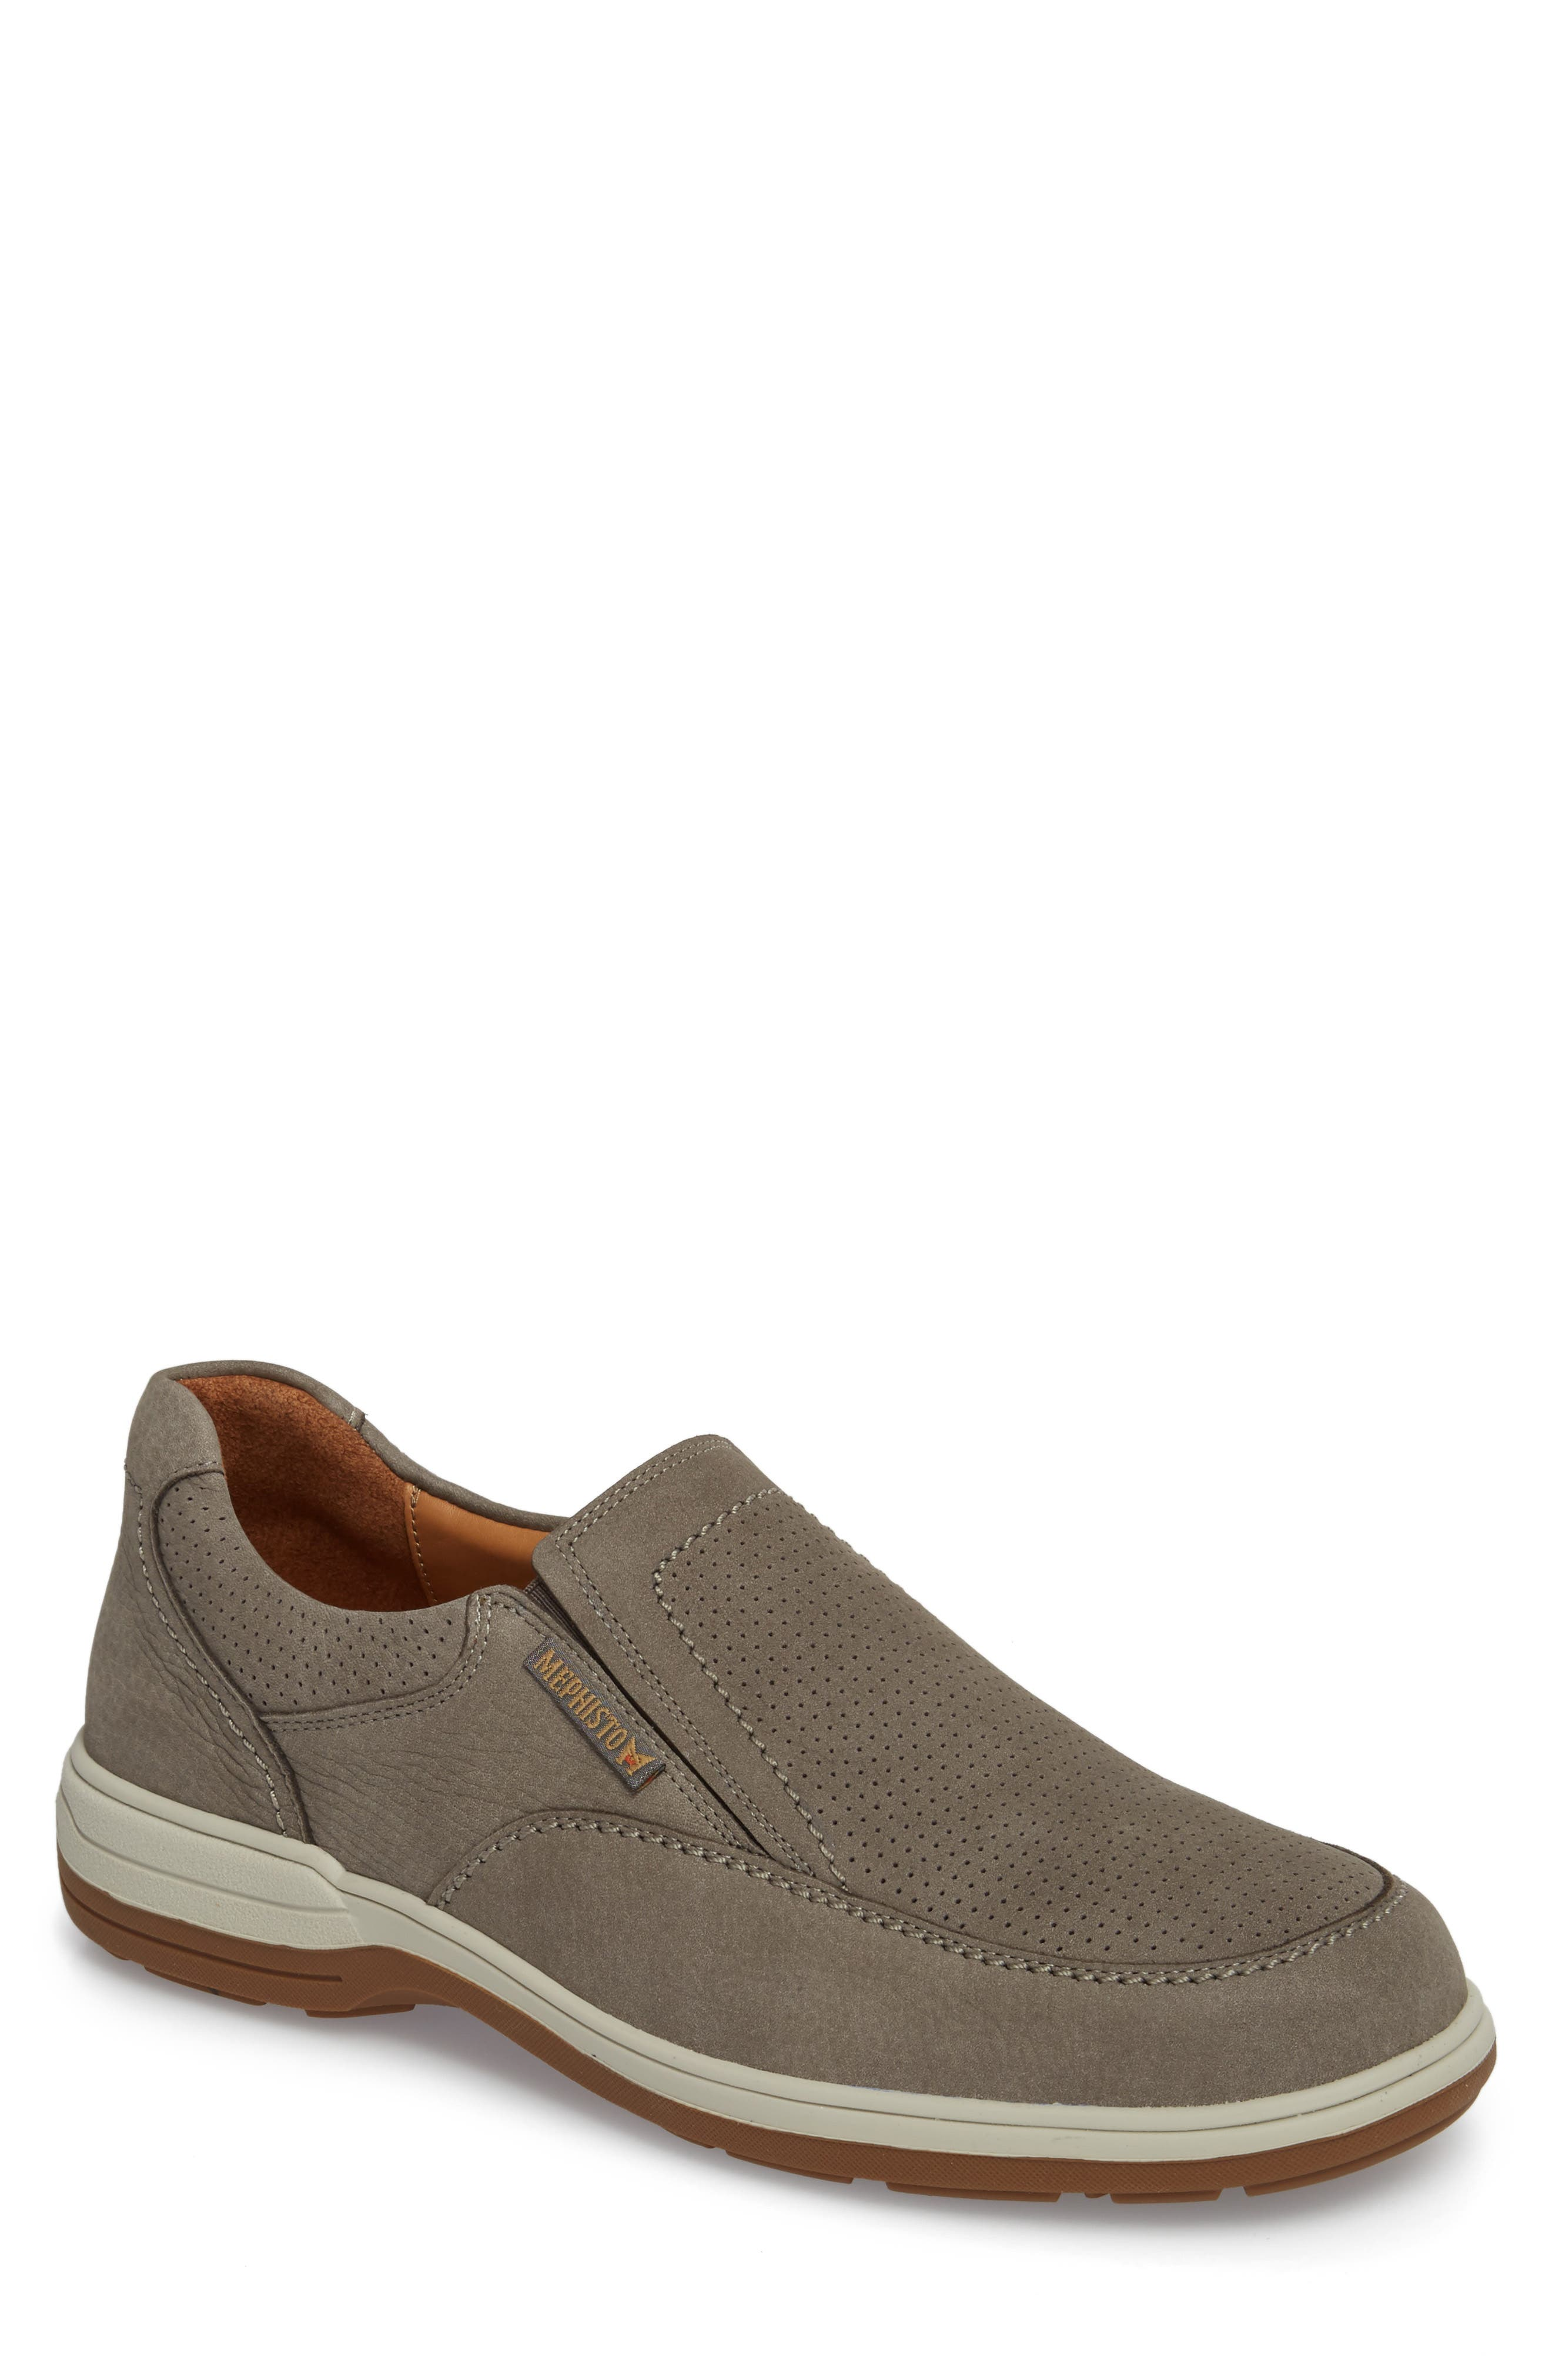 Davy Perforated Slip-On Sneaker,                             Main thumbnail 1, color,                             051